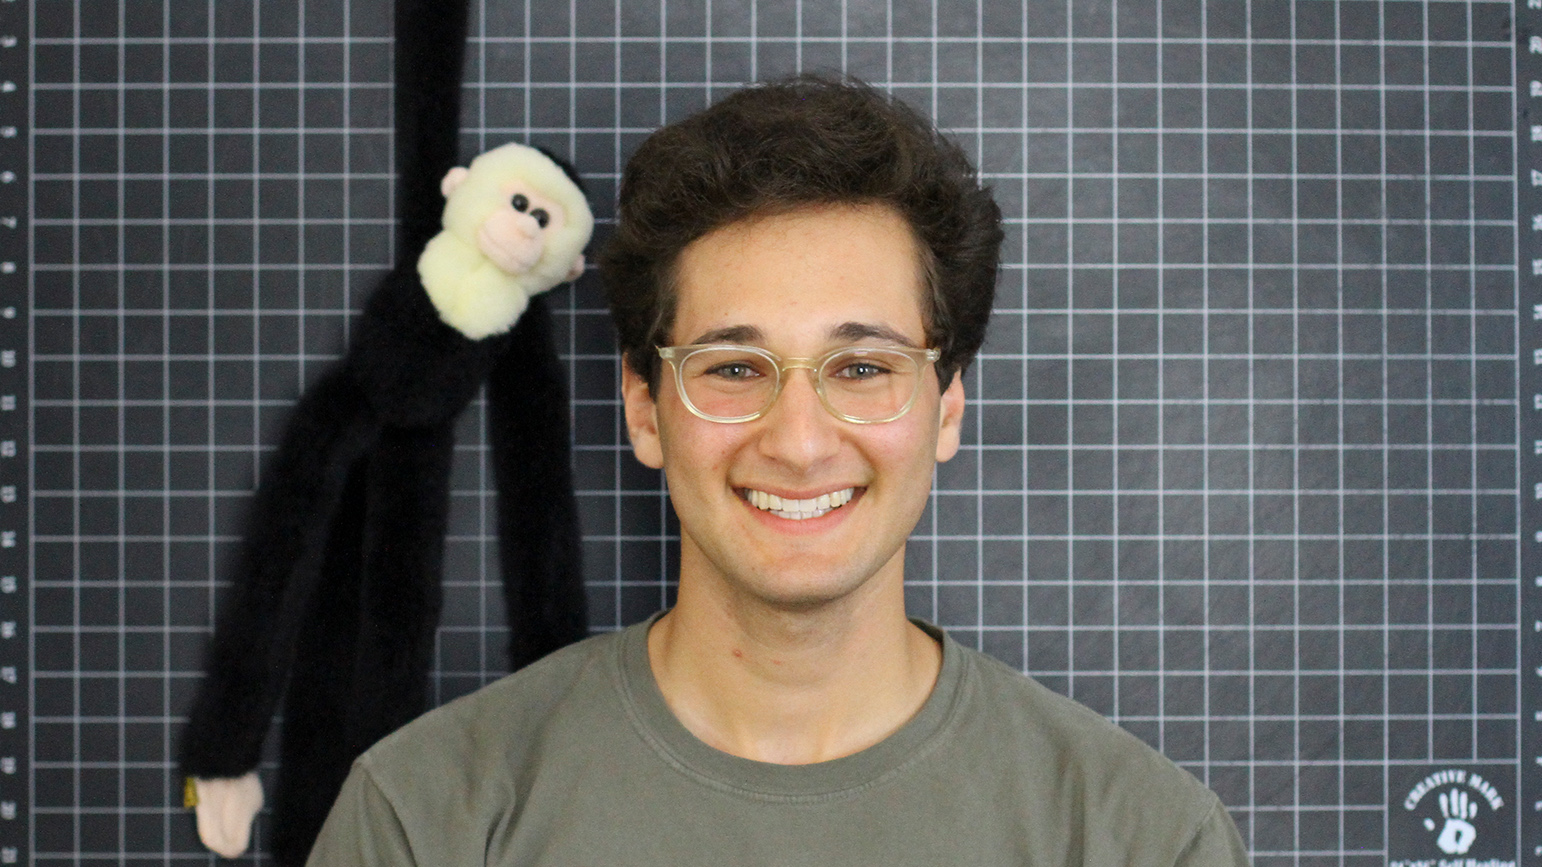 Headshot of Zachary Rapaport in front of a grid mat and with a stuffed monkey